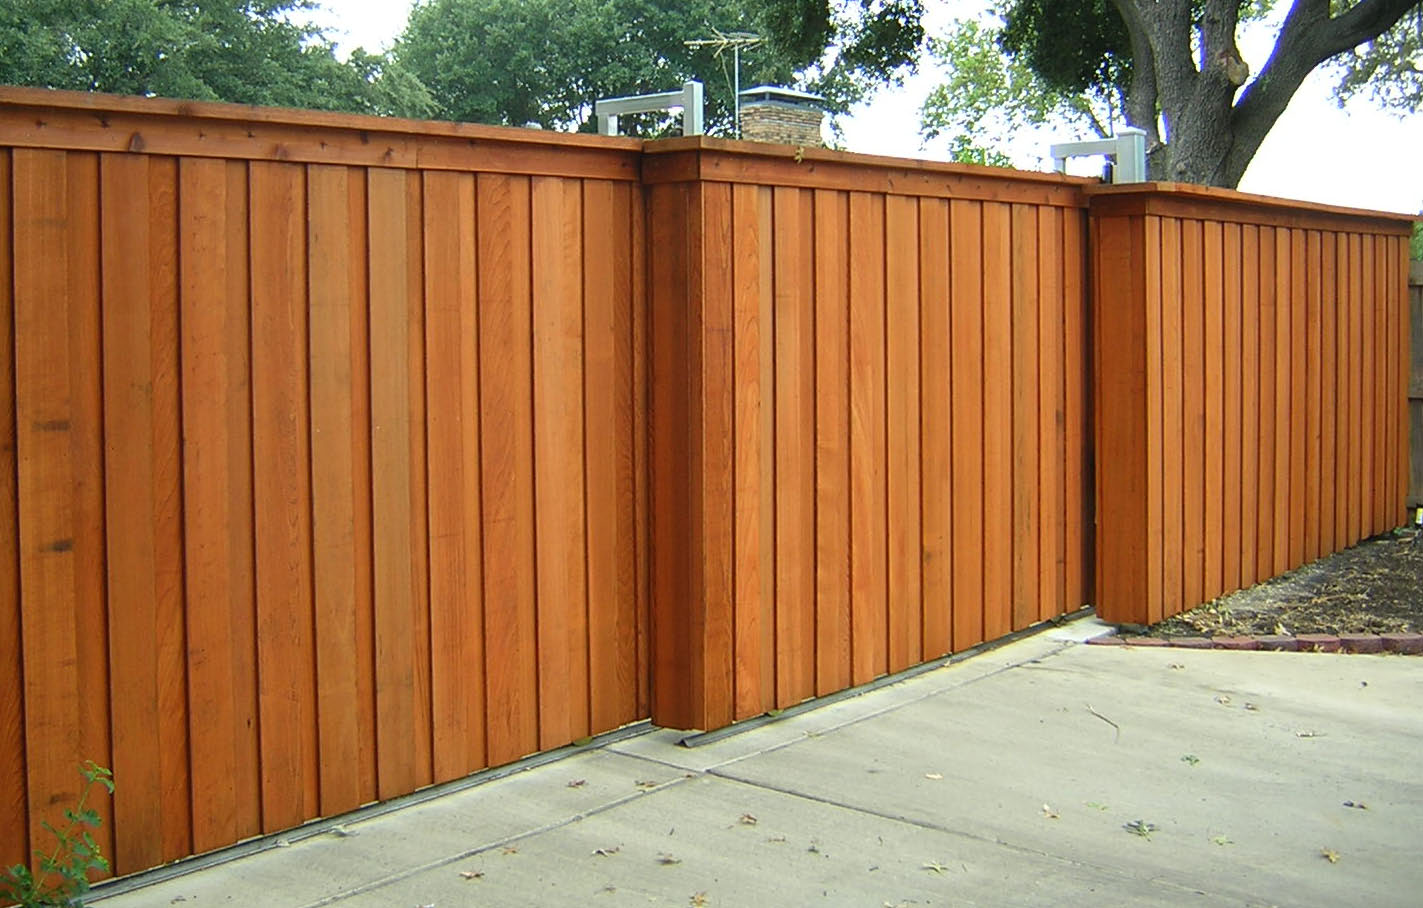 Wood Fence Designs and Their Uses - Broward County Fence